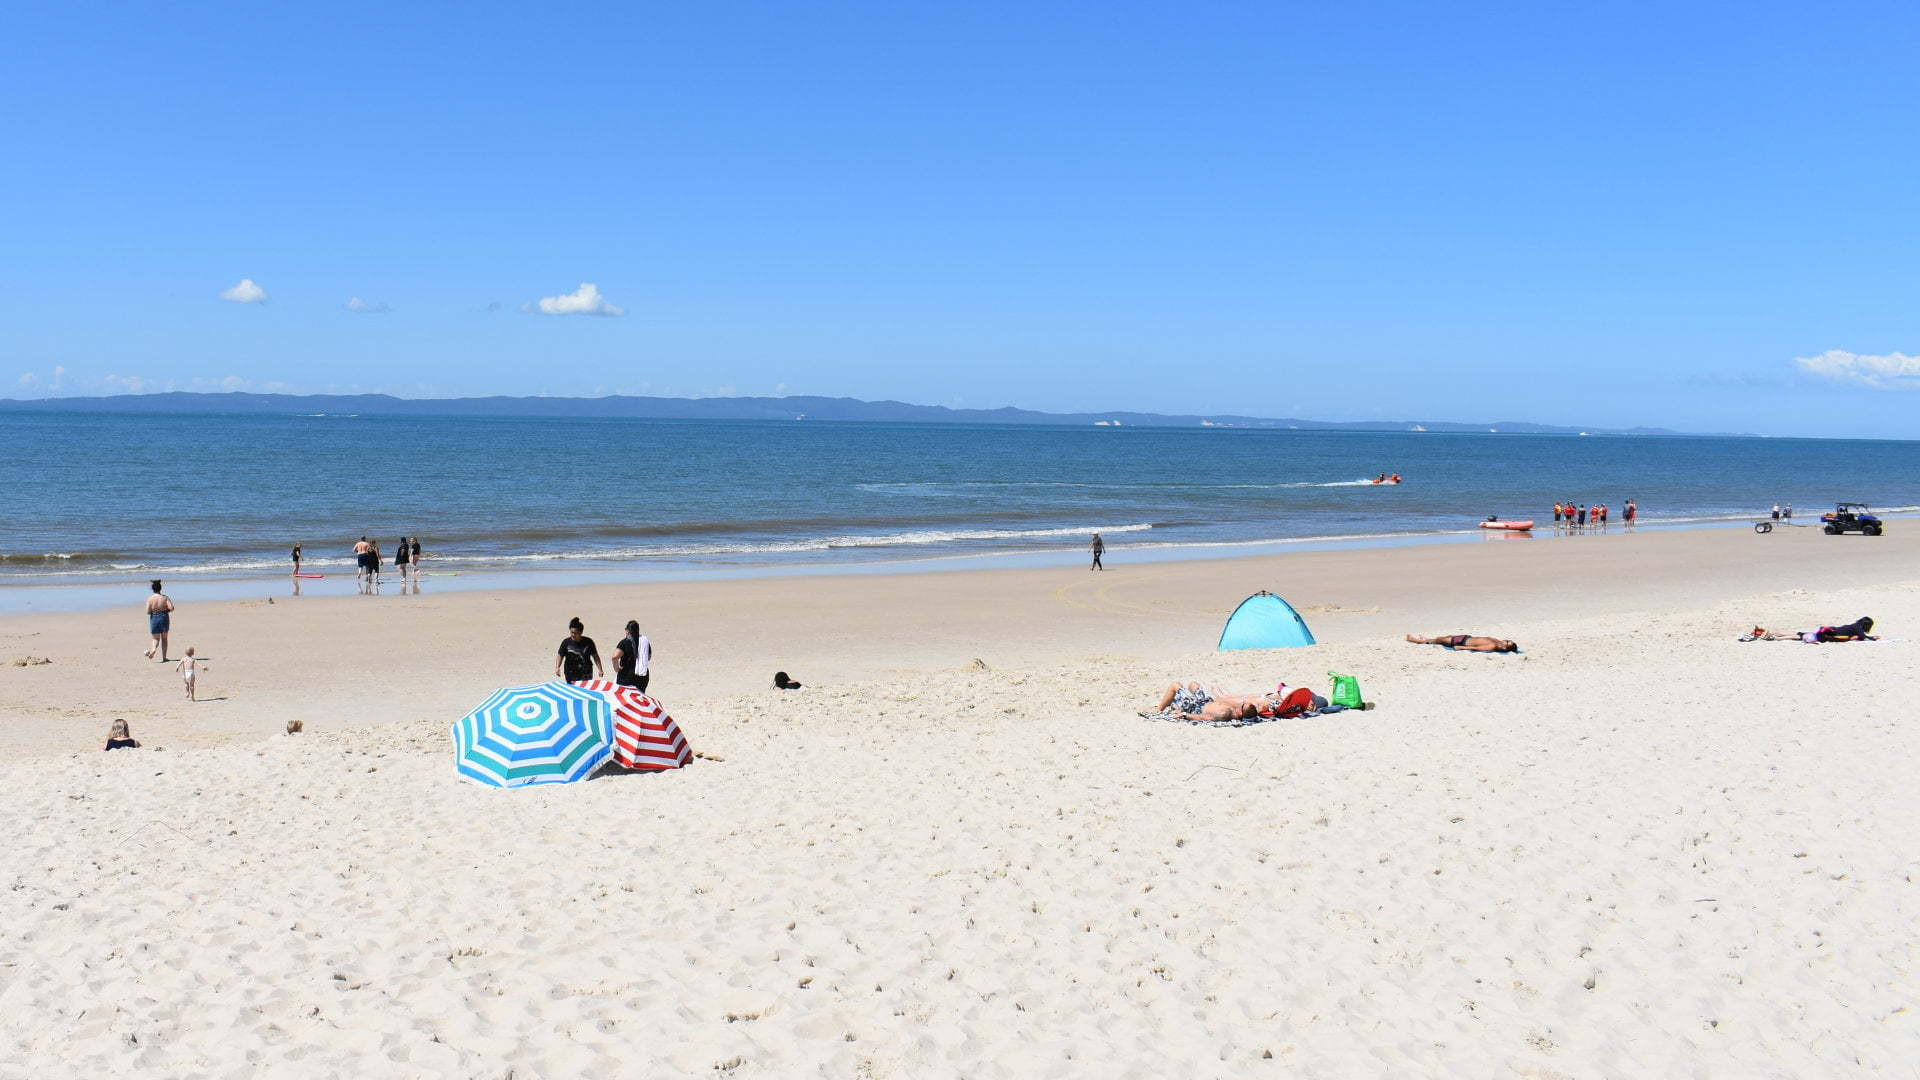 Surf Beach, people on the beach, beach umbrella, from the surf beach on Bribie Island and Moreton Island across the water in the distance, lifesavers with a boat to the right